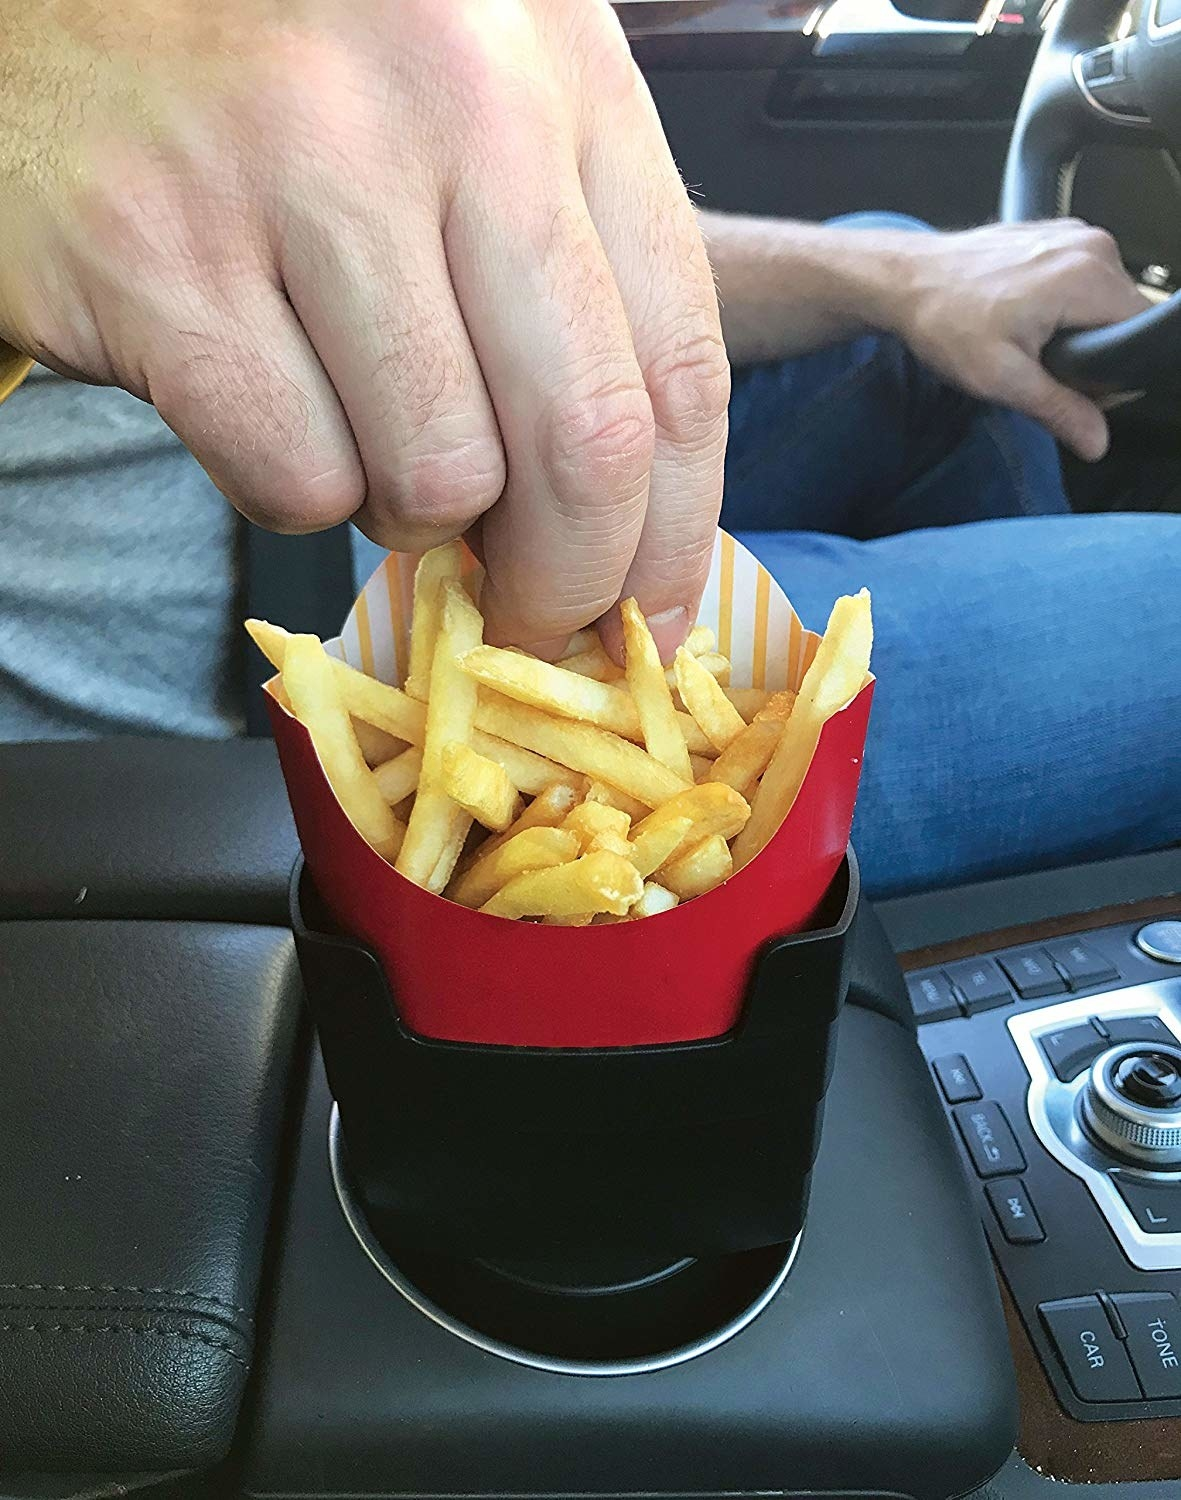 The French fry holder placed in the cupholder of a car.